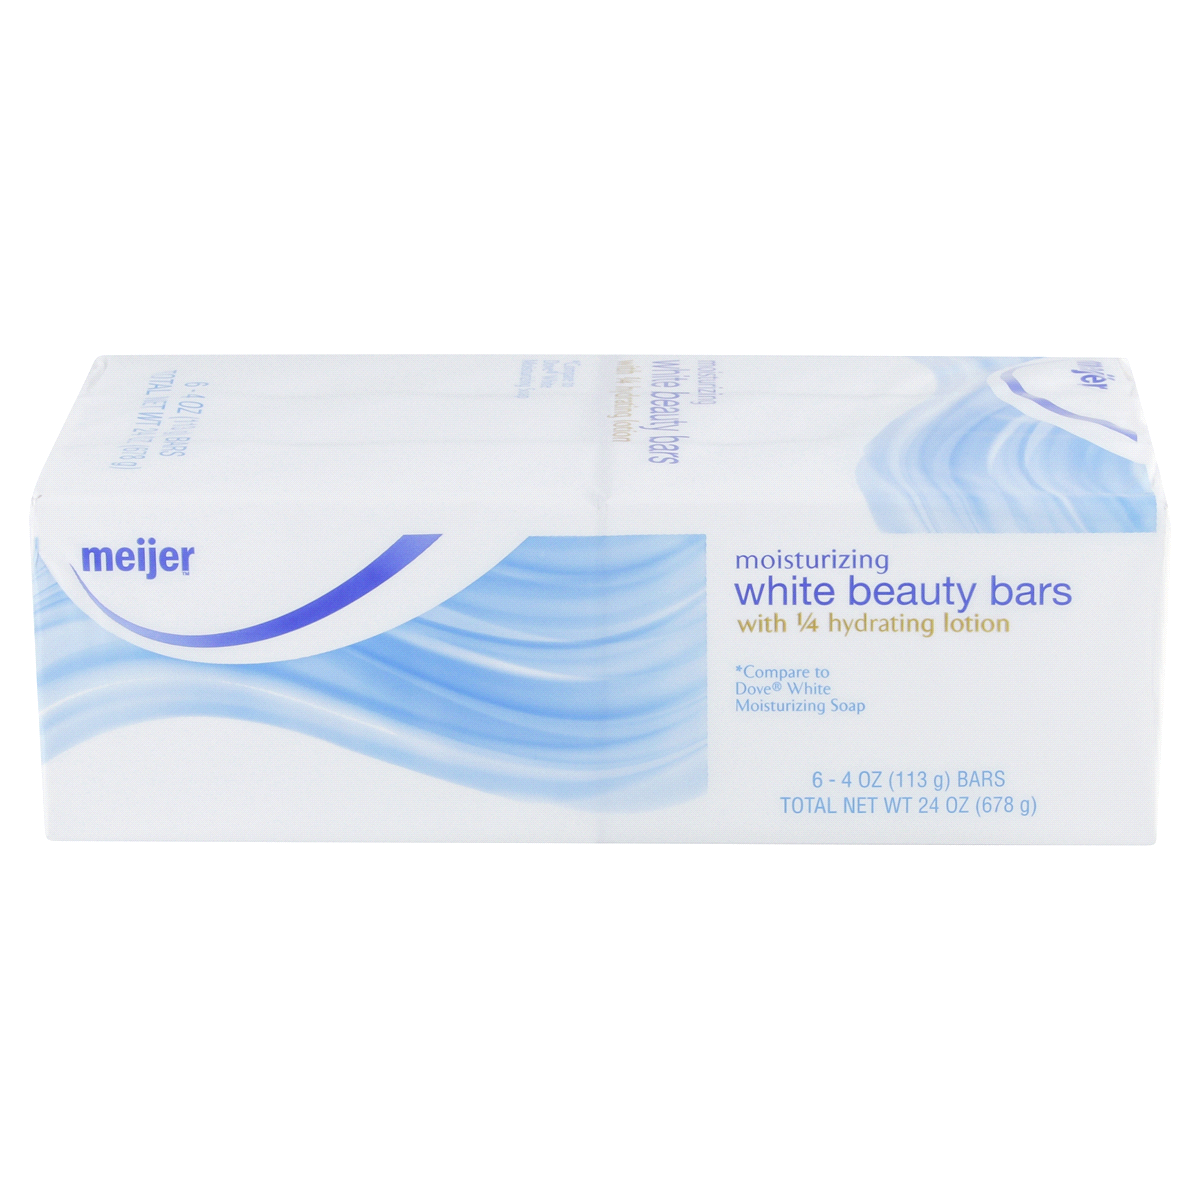 slide 2 of 4, Meijer Moisturizing White Beauty Bar Soap,